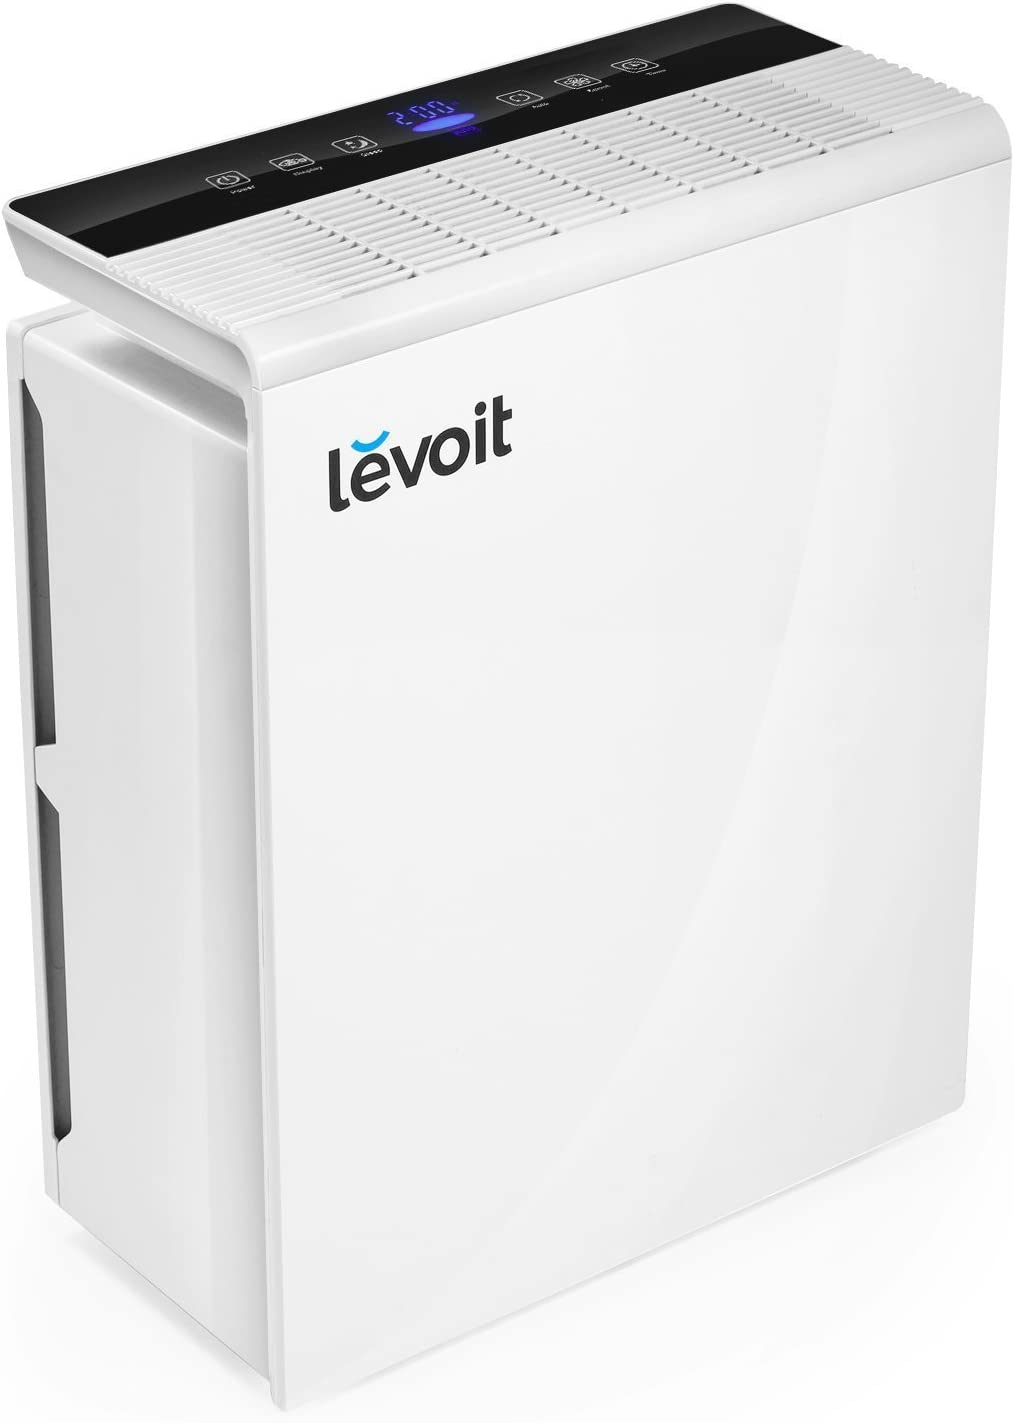 LEVOIT Air Purifier for Home Bedroom, True HEPA Air Filter for Large Room, Air Cleaners for Allergies and Pets,Mold,Pollen,Dust,Smoke and Odor Eliminator for Kitchen, Auto Mode and Timer,LV-PUR131